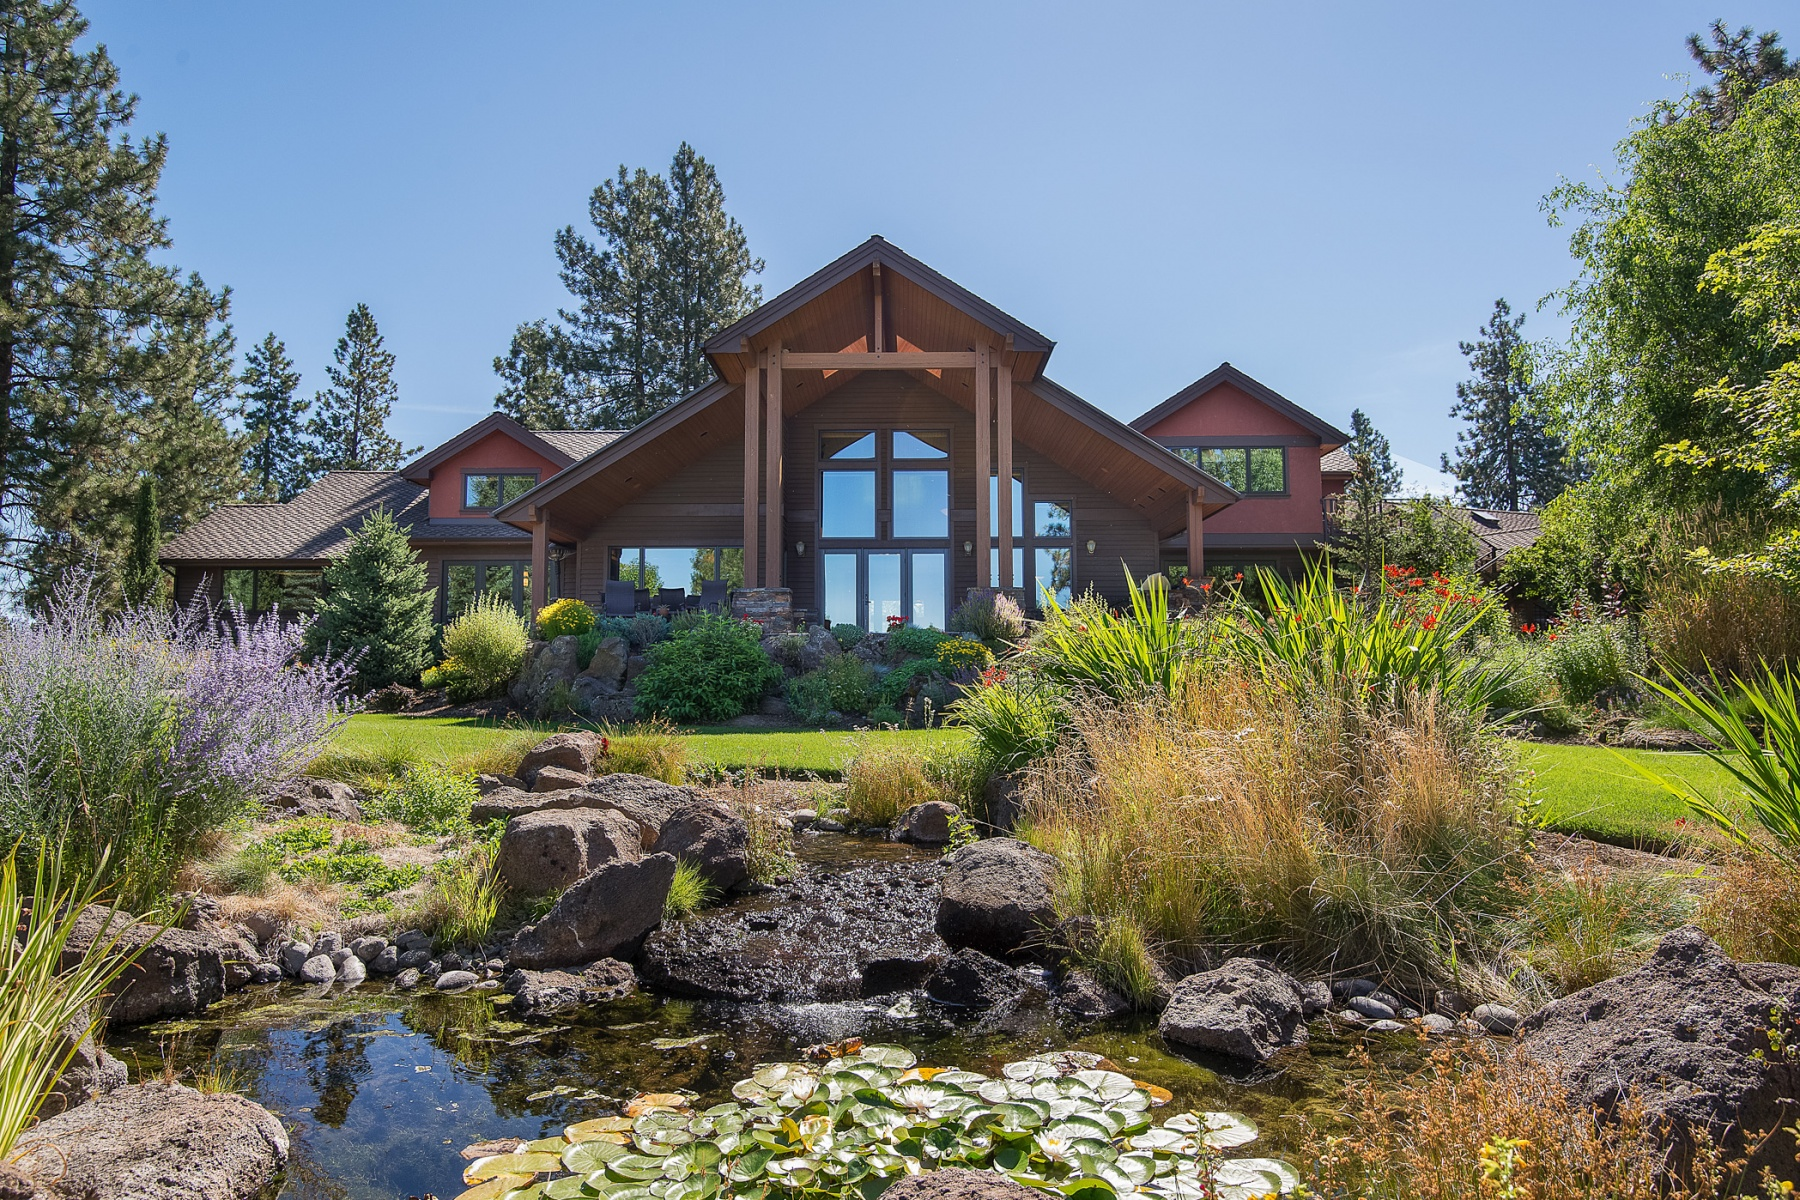 Maison unifamiliale pour l Vente à 60475 Sunset View Drive, BEND Bend, Oregon, 97702 États-Unis